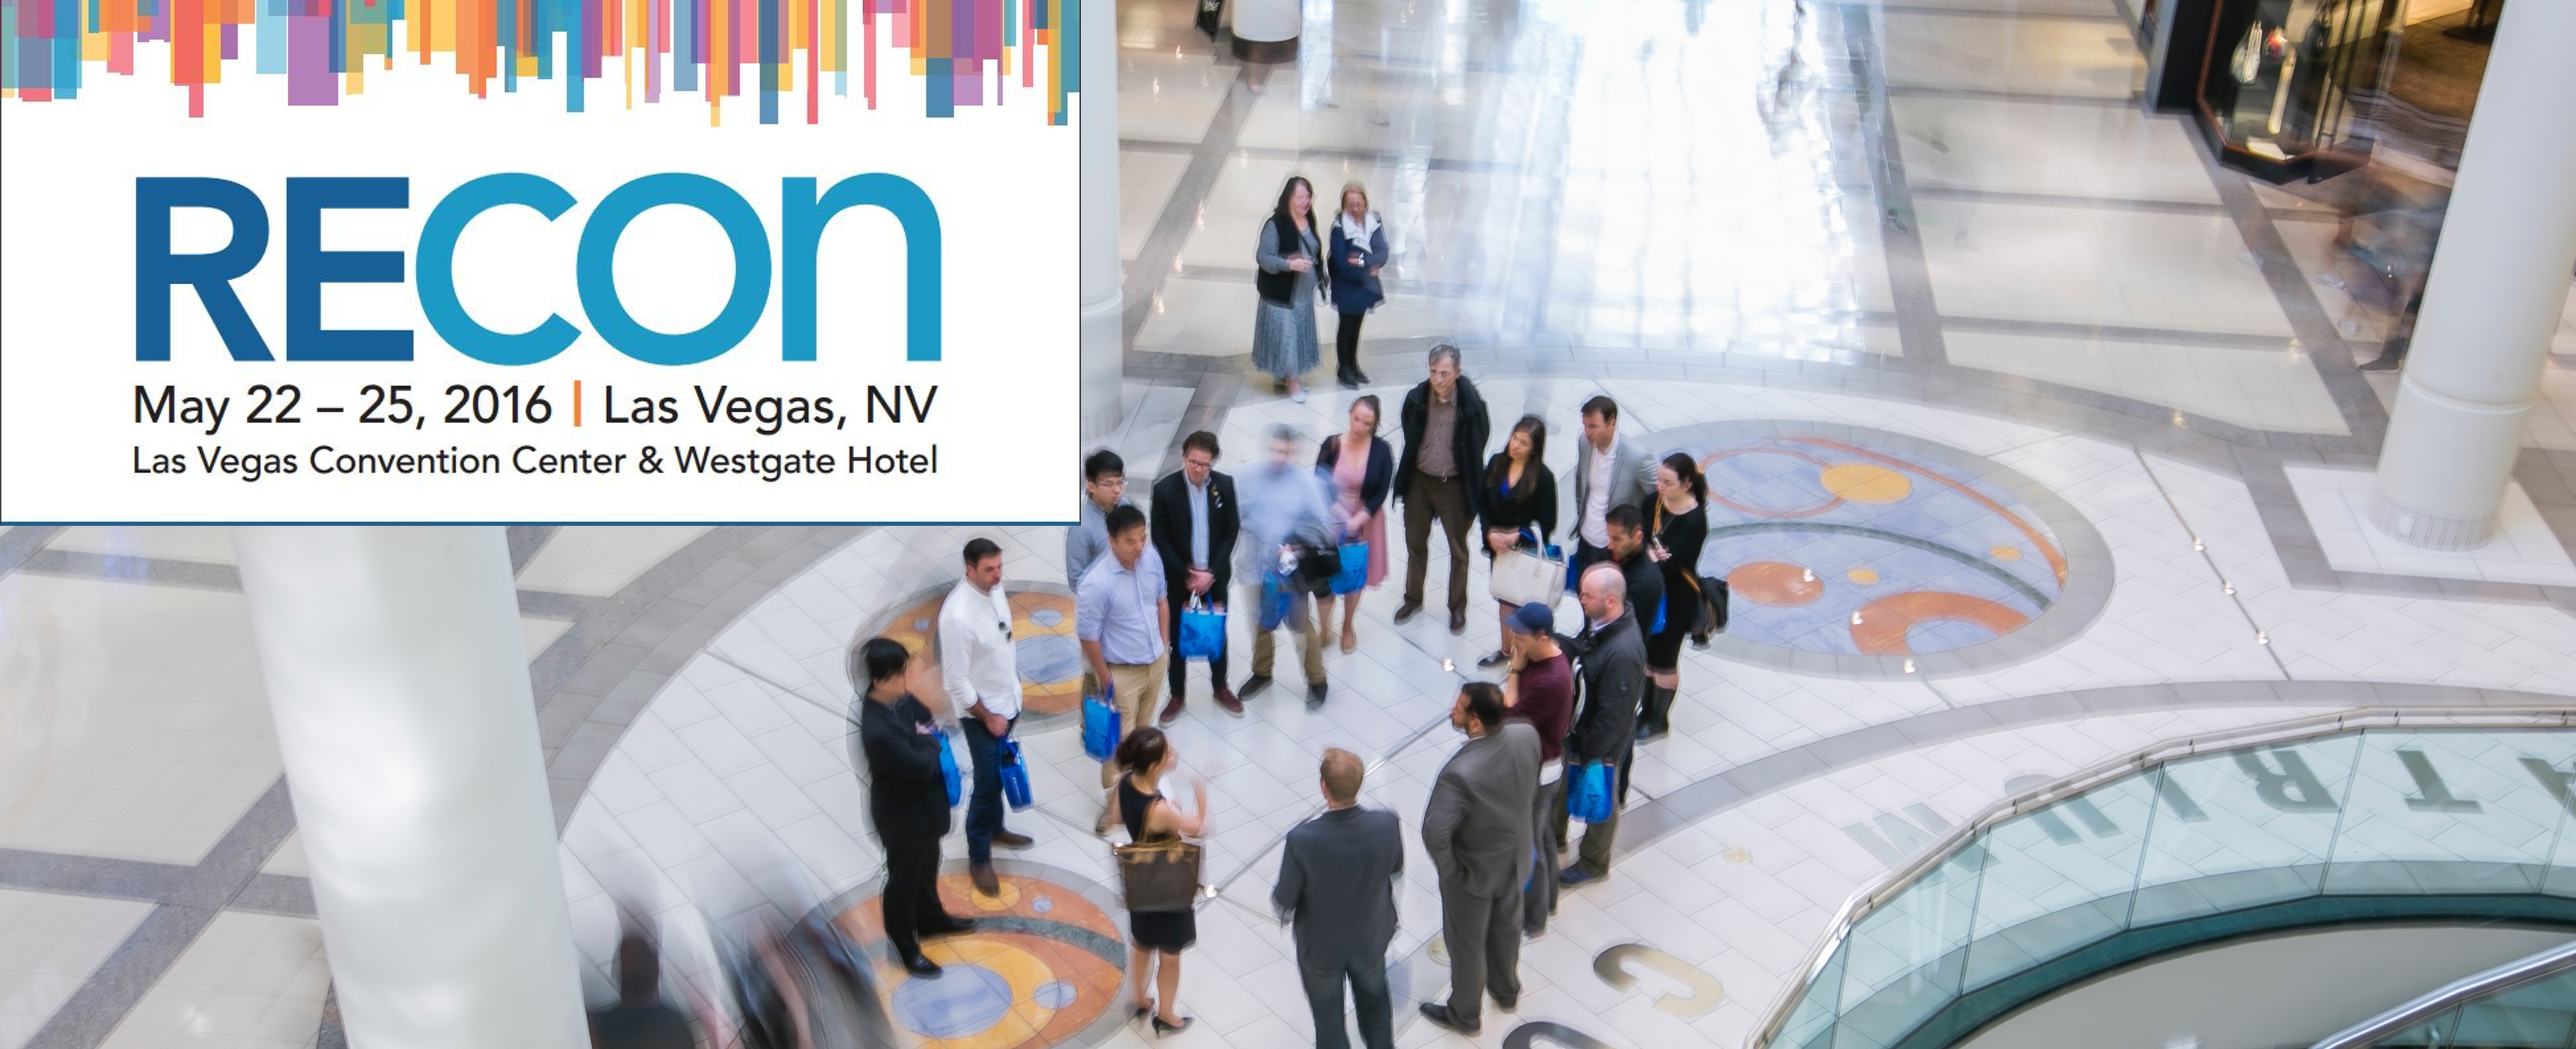 Learn About The Baker Program at ICSC RECON